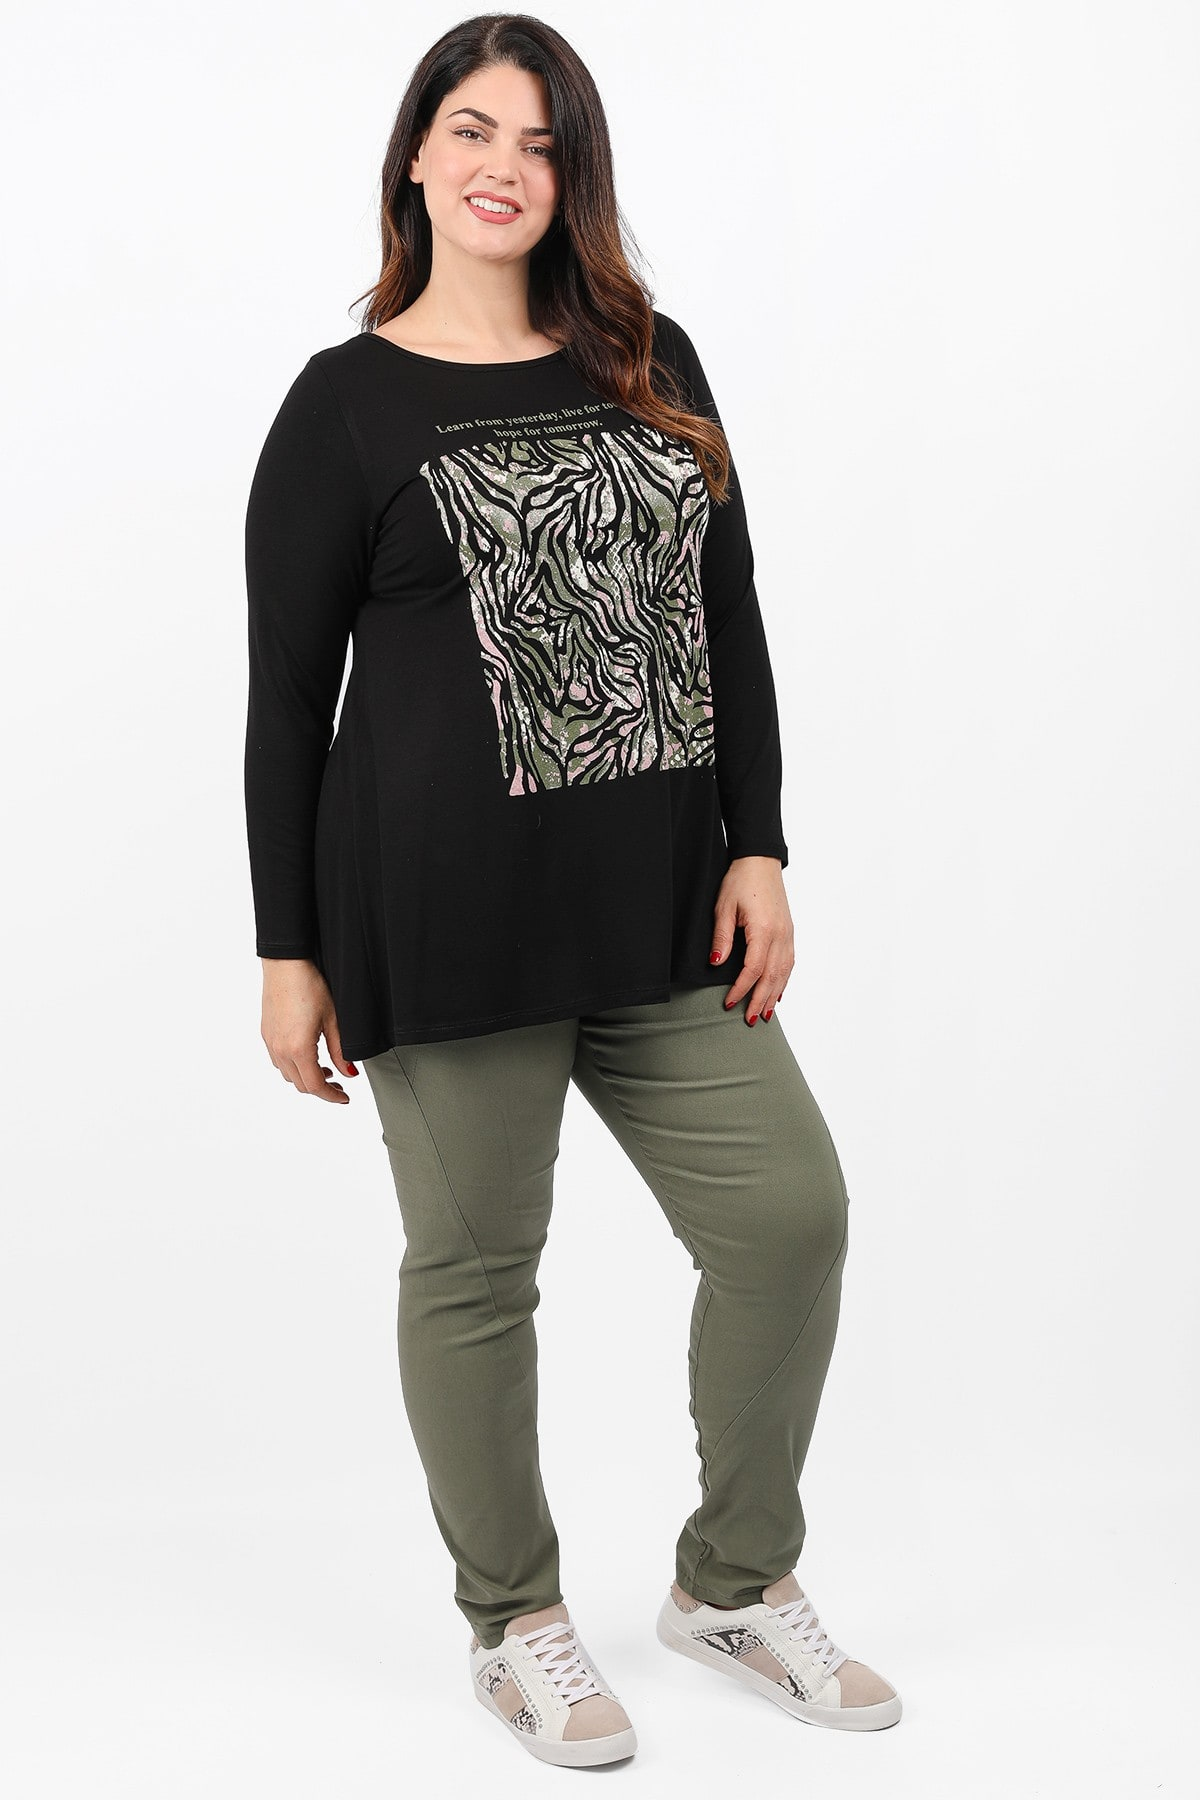 Blouse with print at the front view